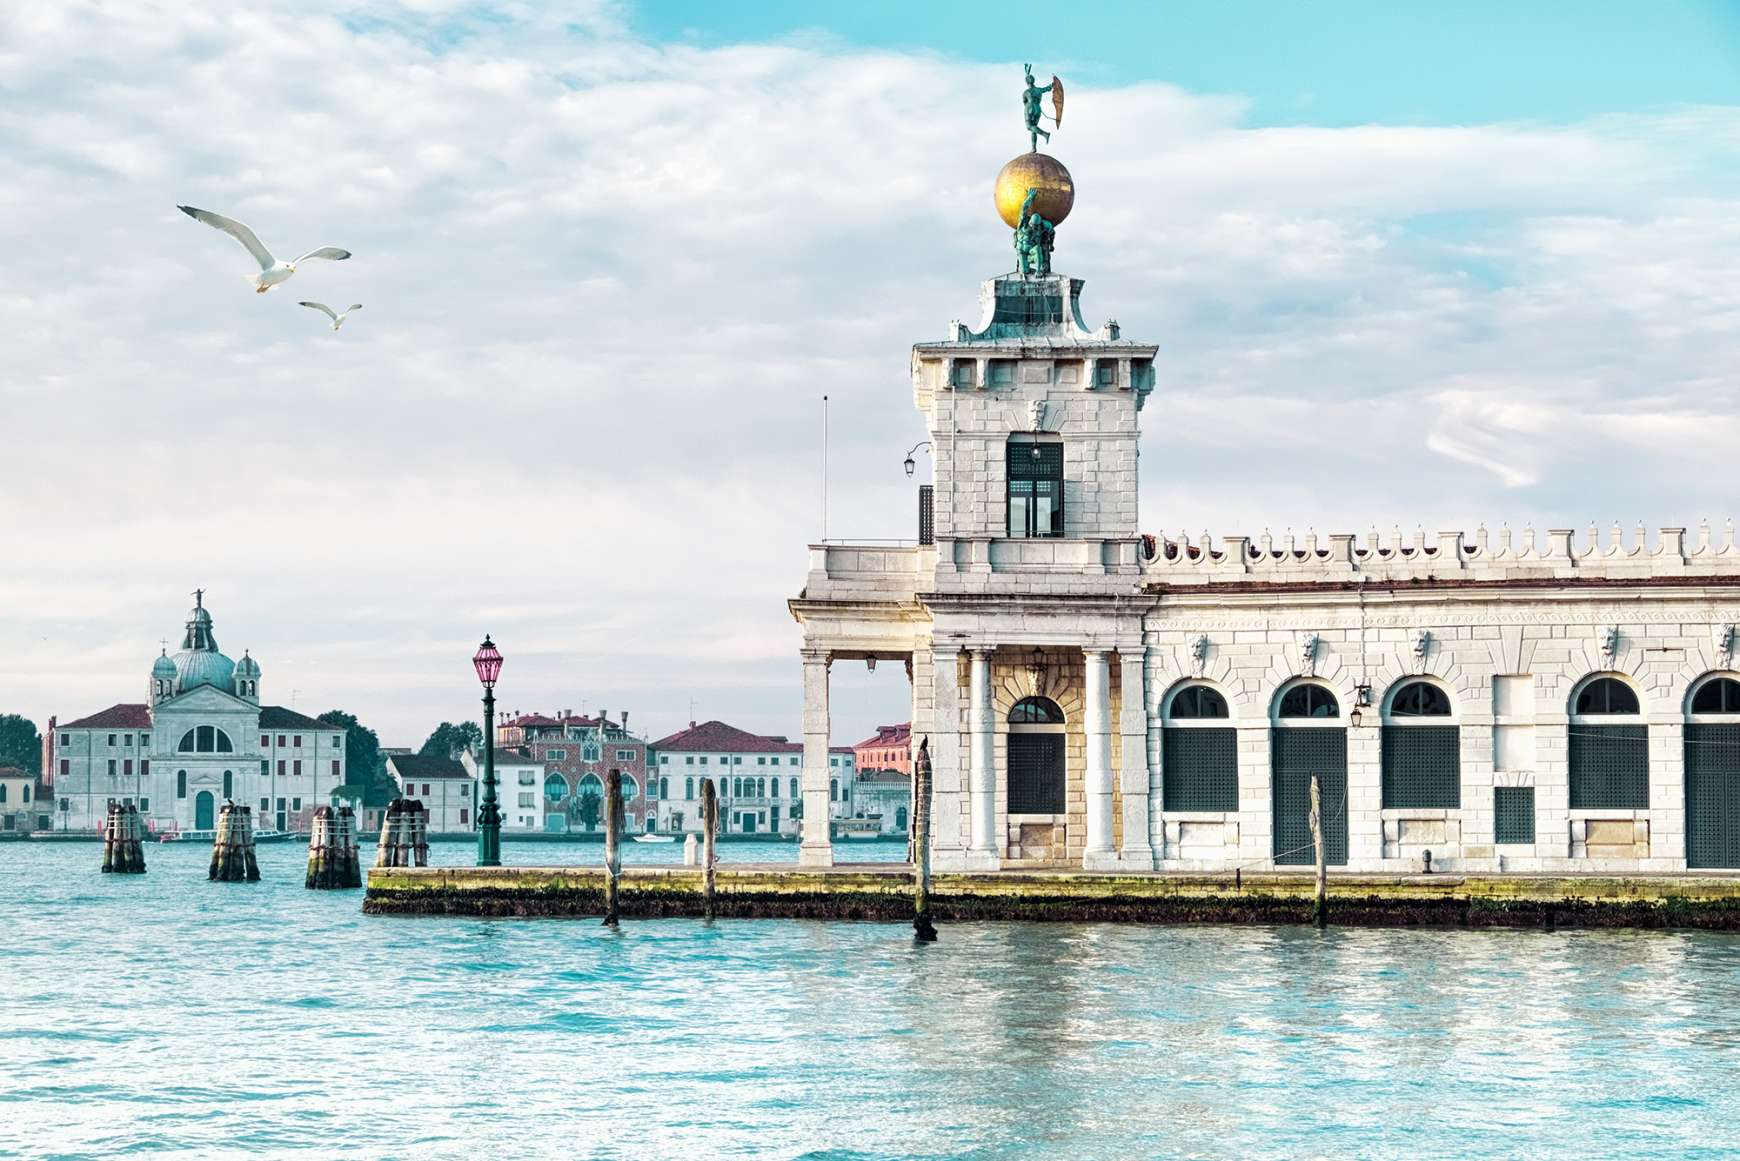 View of Punta della Dogana's art center jutting out into the water in Venice